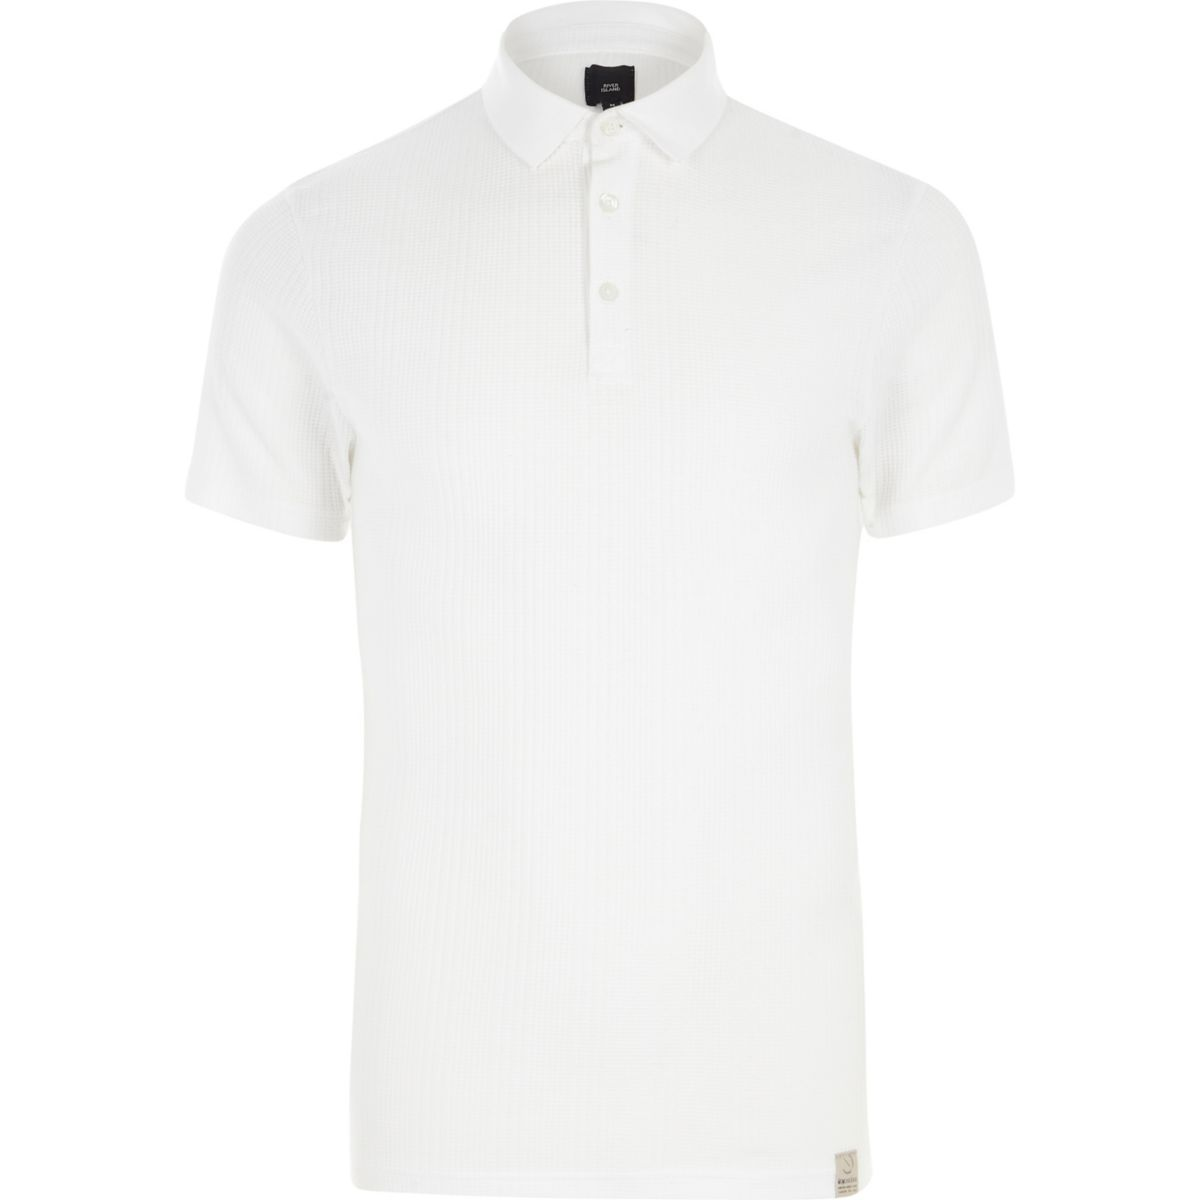 White muscle fit waffle block polo shirt